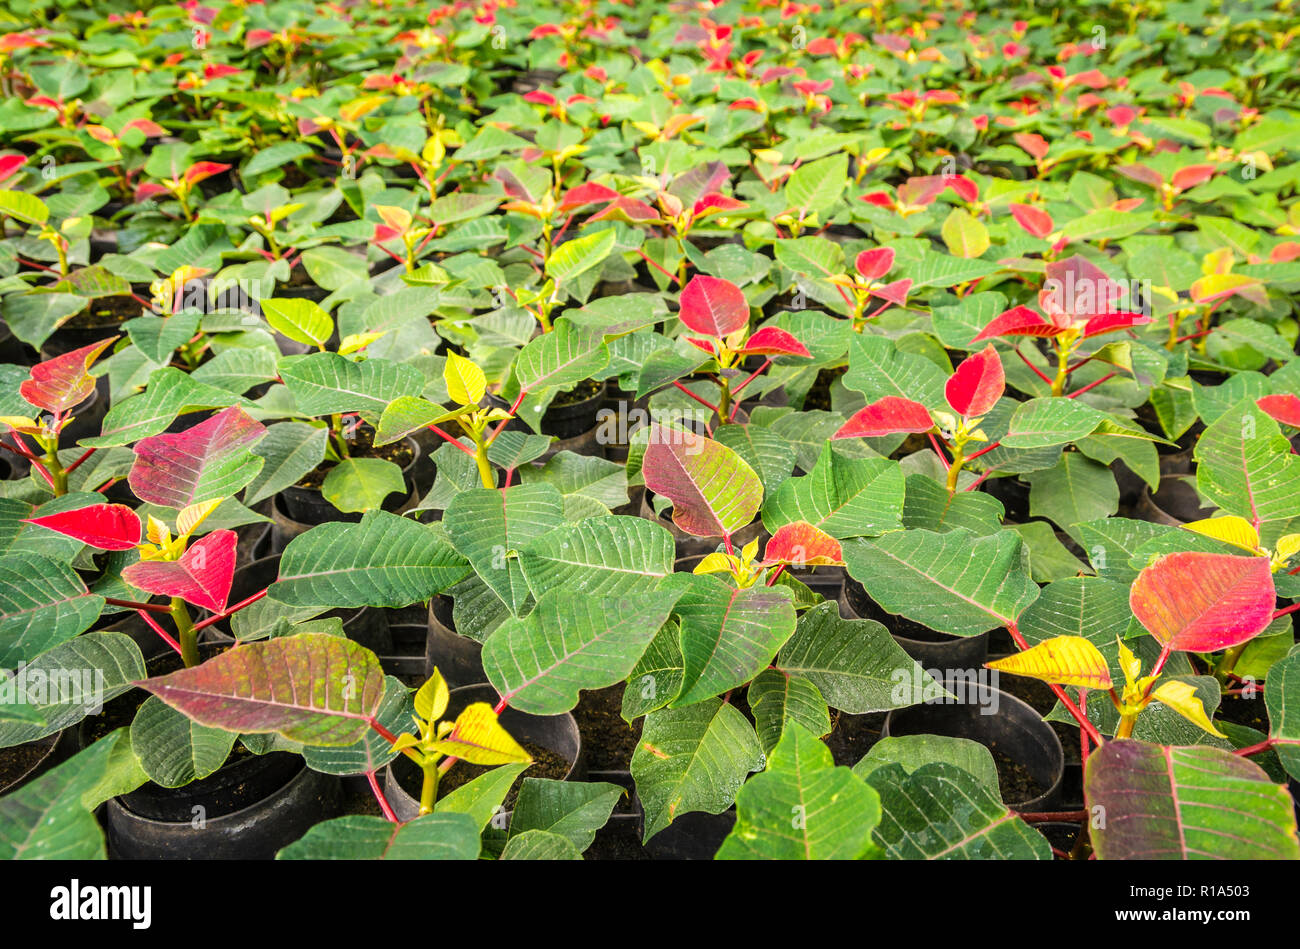 small plants of poinsettia or christmas star flower.Euphorbia pulcherrima is a popular garden plant associated with winter festivities - Stock Image